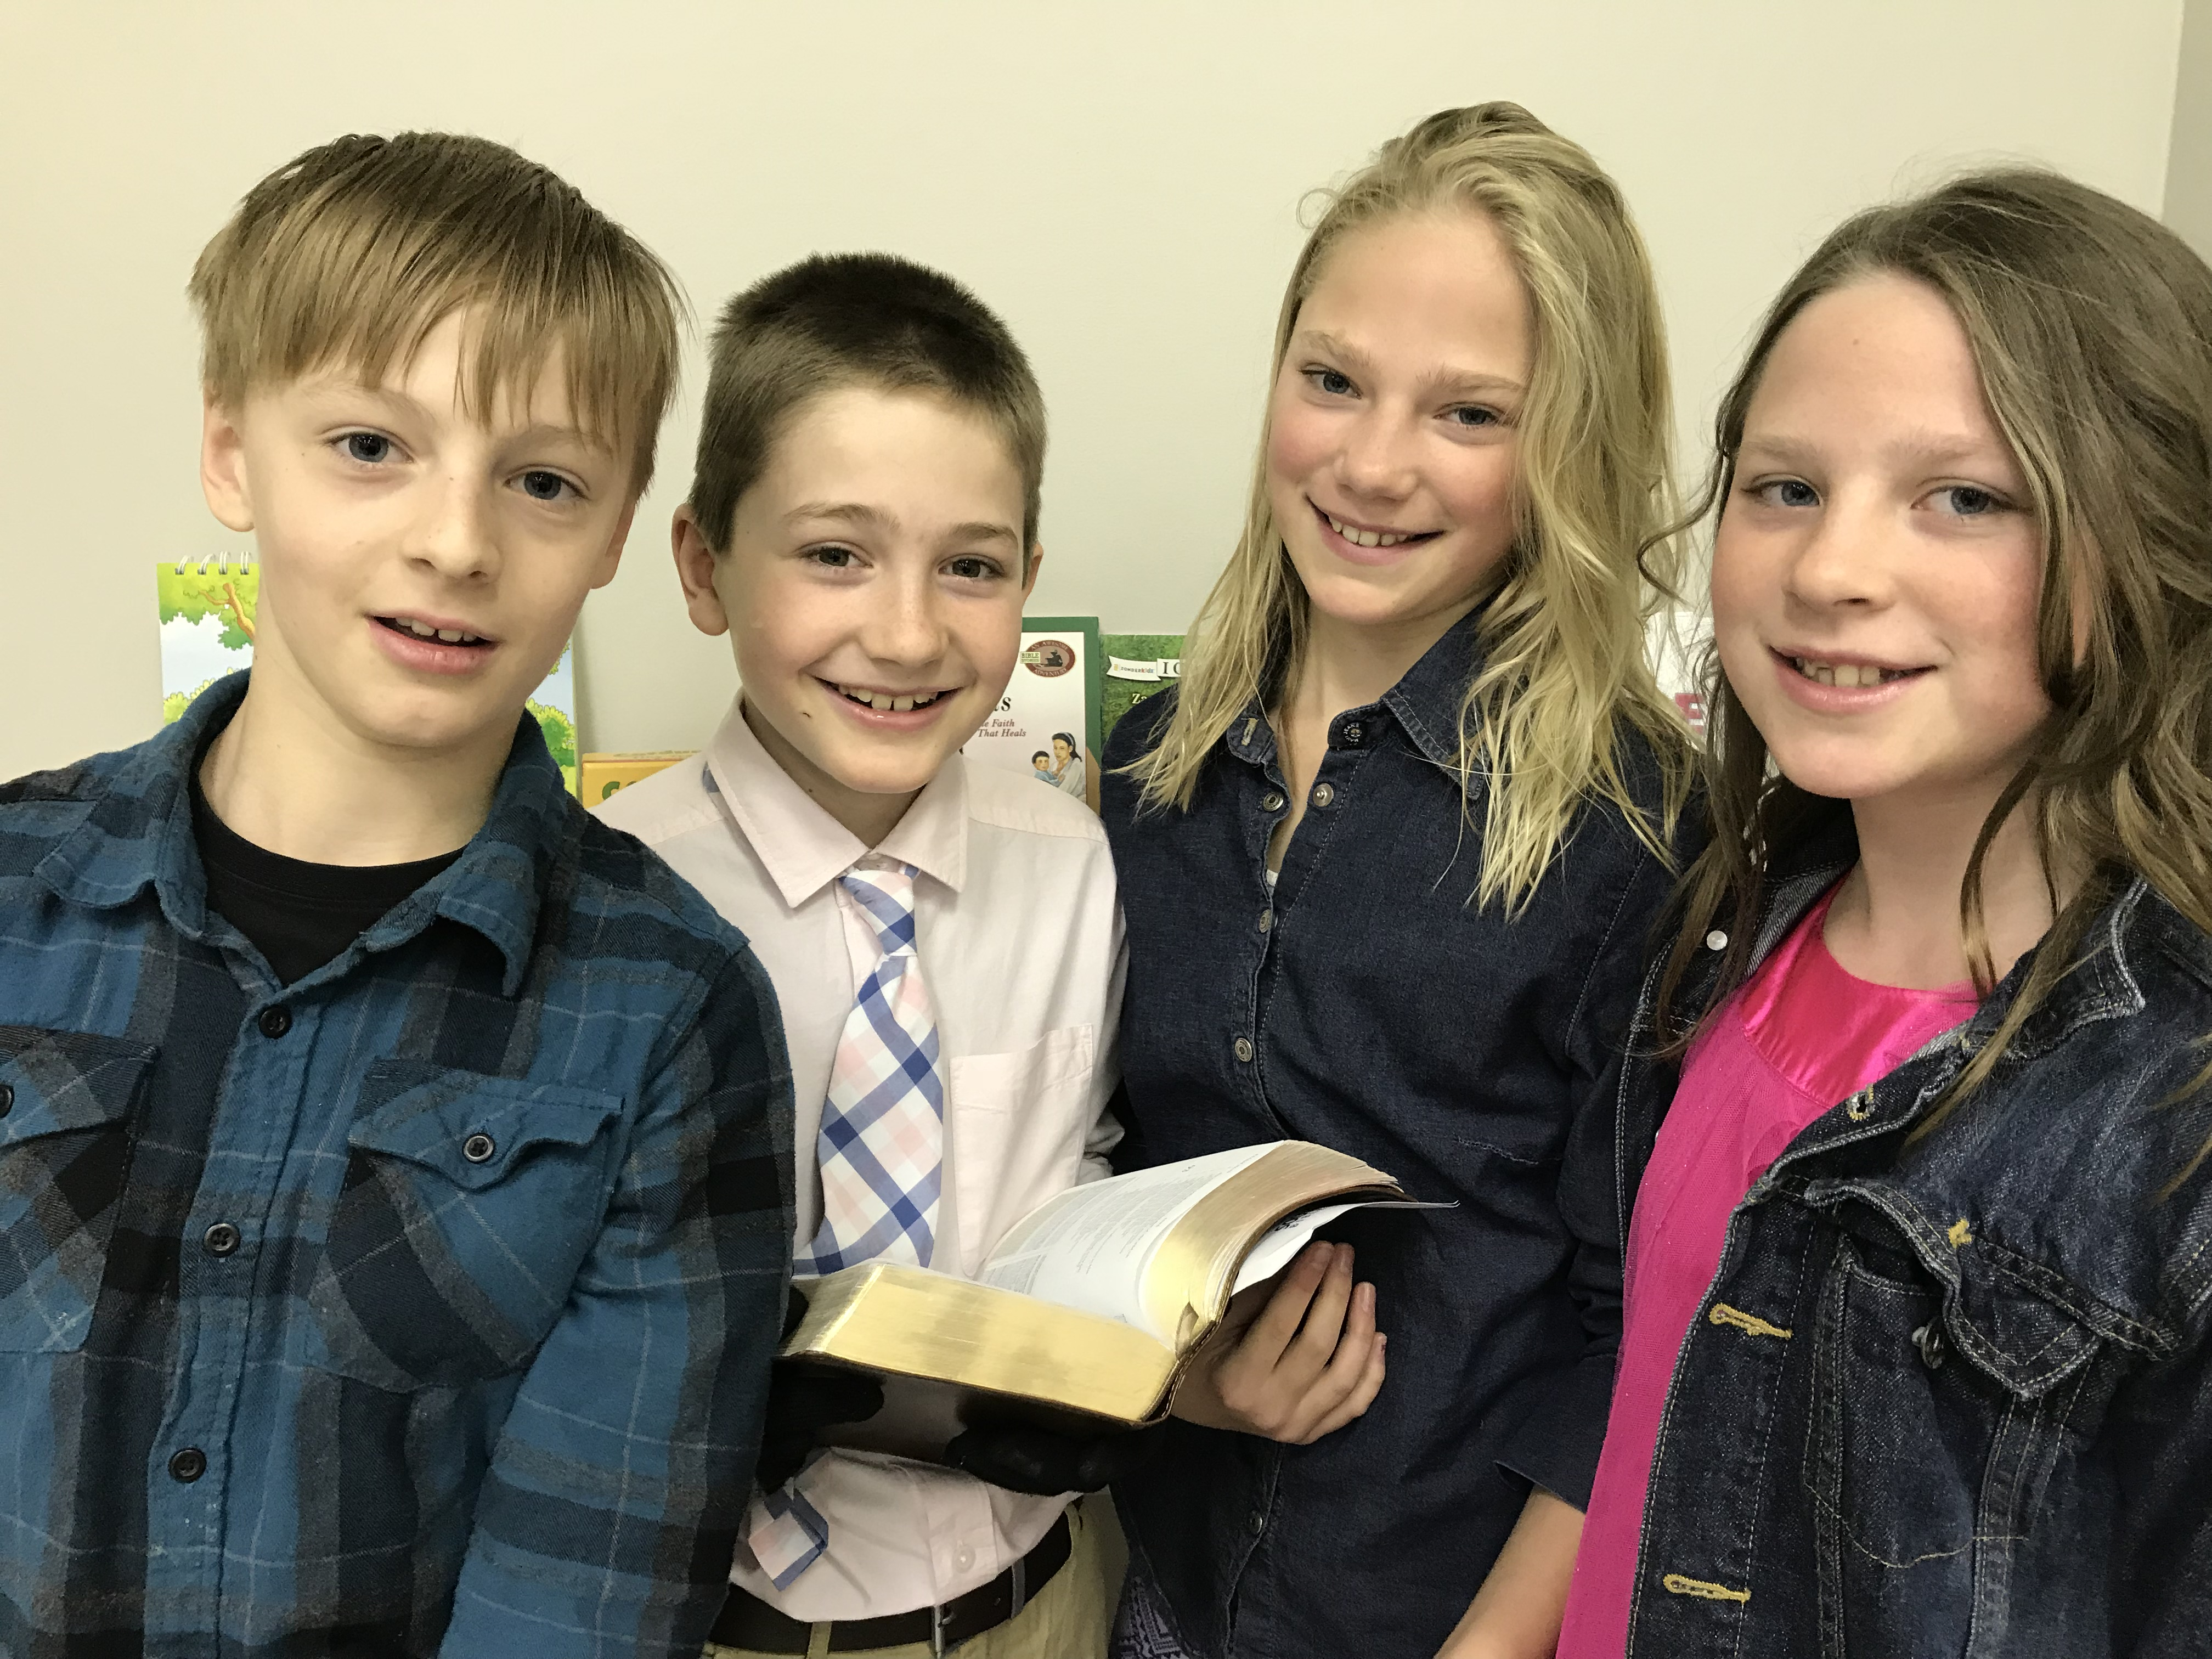 Kids with Bible image